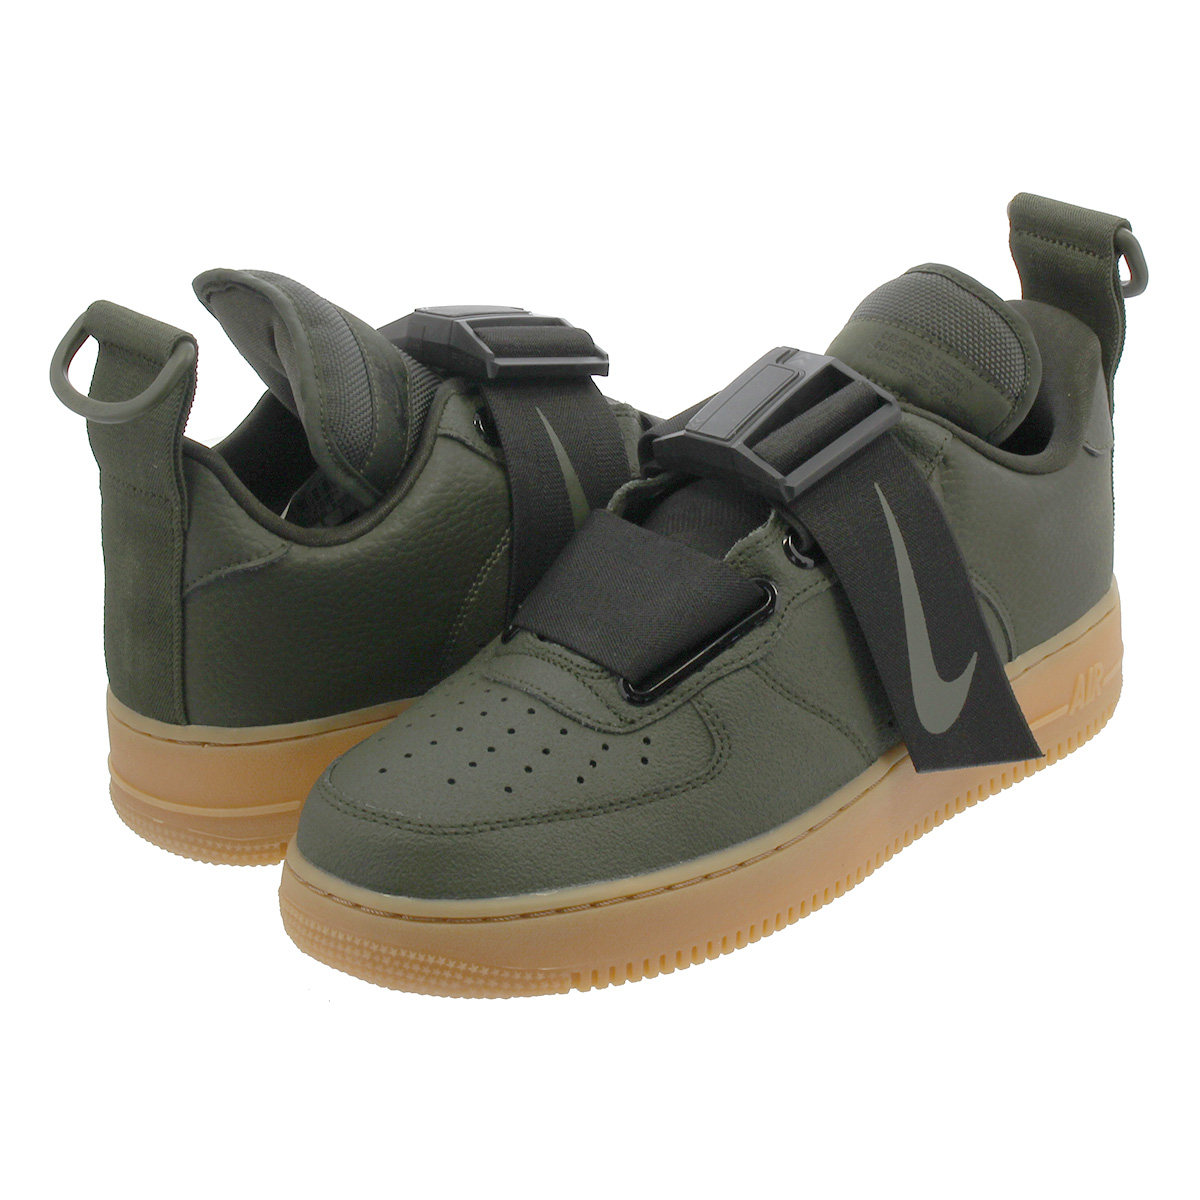 edc20c7986168a NIKE AIR FORCE 1 UTILITY Nike air force 1 utility SEQUOIA BLACK GUM MED  BROWN ao1531-300